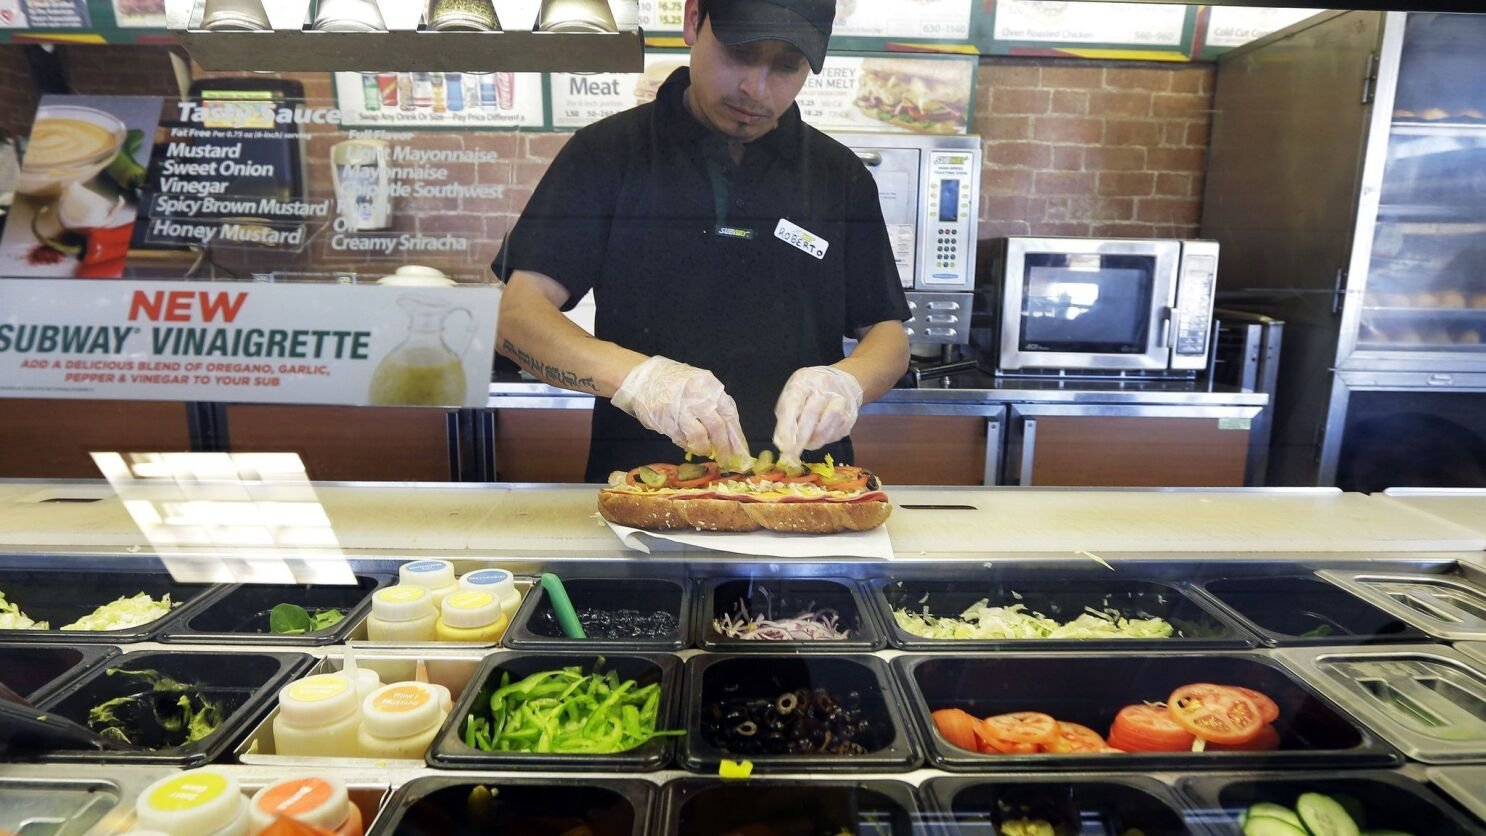 The Dark Side Of Your 5 Footlong Business Owners Say It Could Bankrupt Them Los Angeles Times